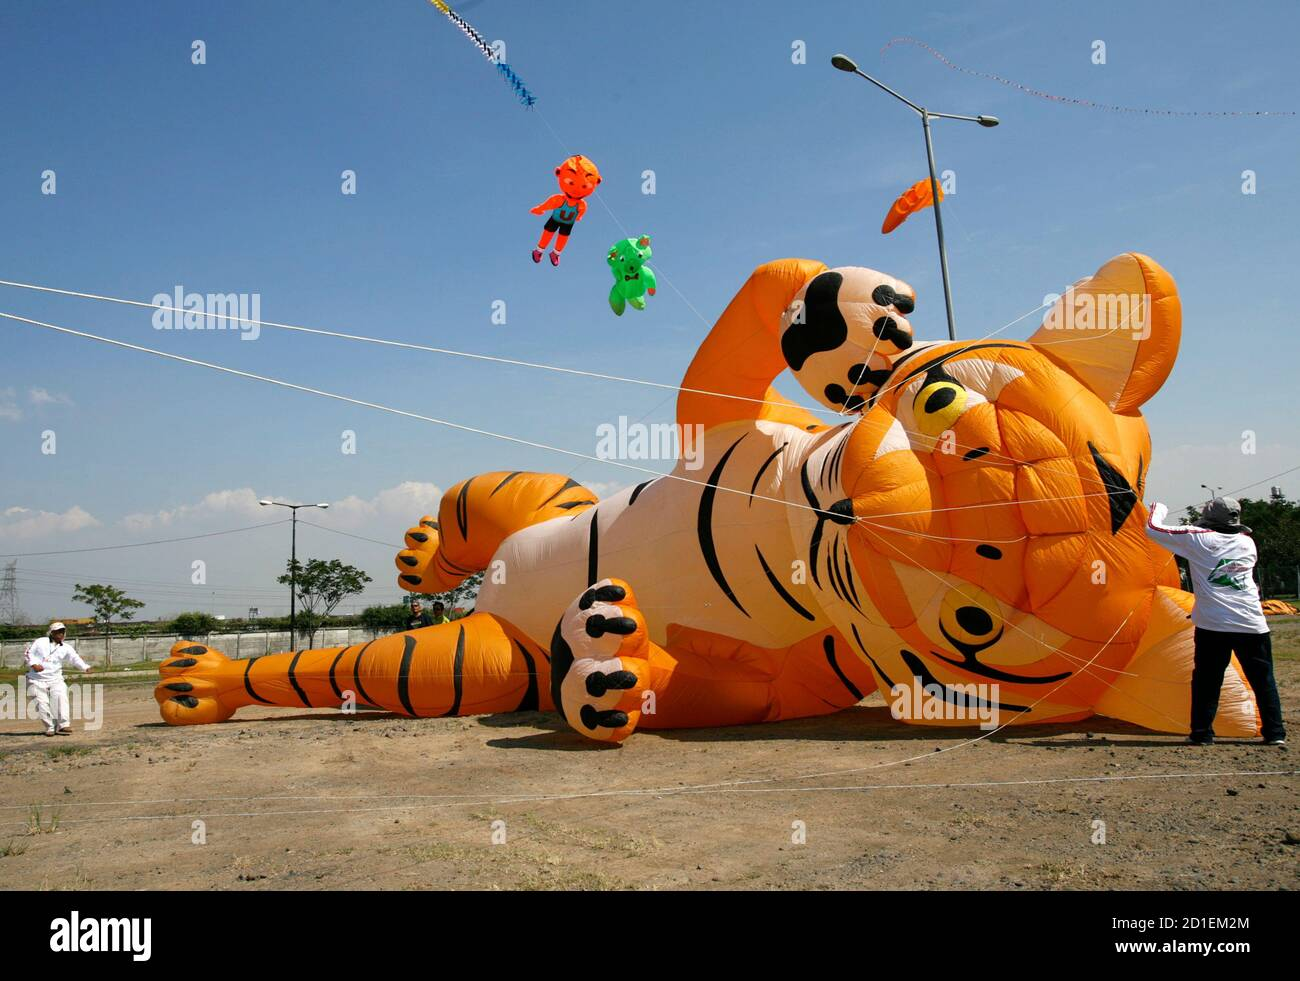 Malaysian participants prepare to fly their kite during the Jakarta International Kite Festival July 24, 2010. Participants from 15 provinces in Indonesia and nine countries, including Australia, Germany, Malaysia, Singapore, the Netherlands and Japan, joined the two-day festival.  REUTERS/Supri (INDONESIA - Tags: SOCIETY) Stock Photo